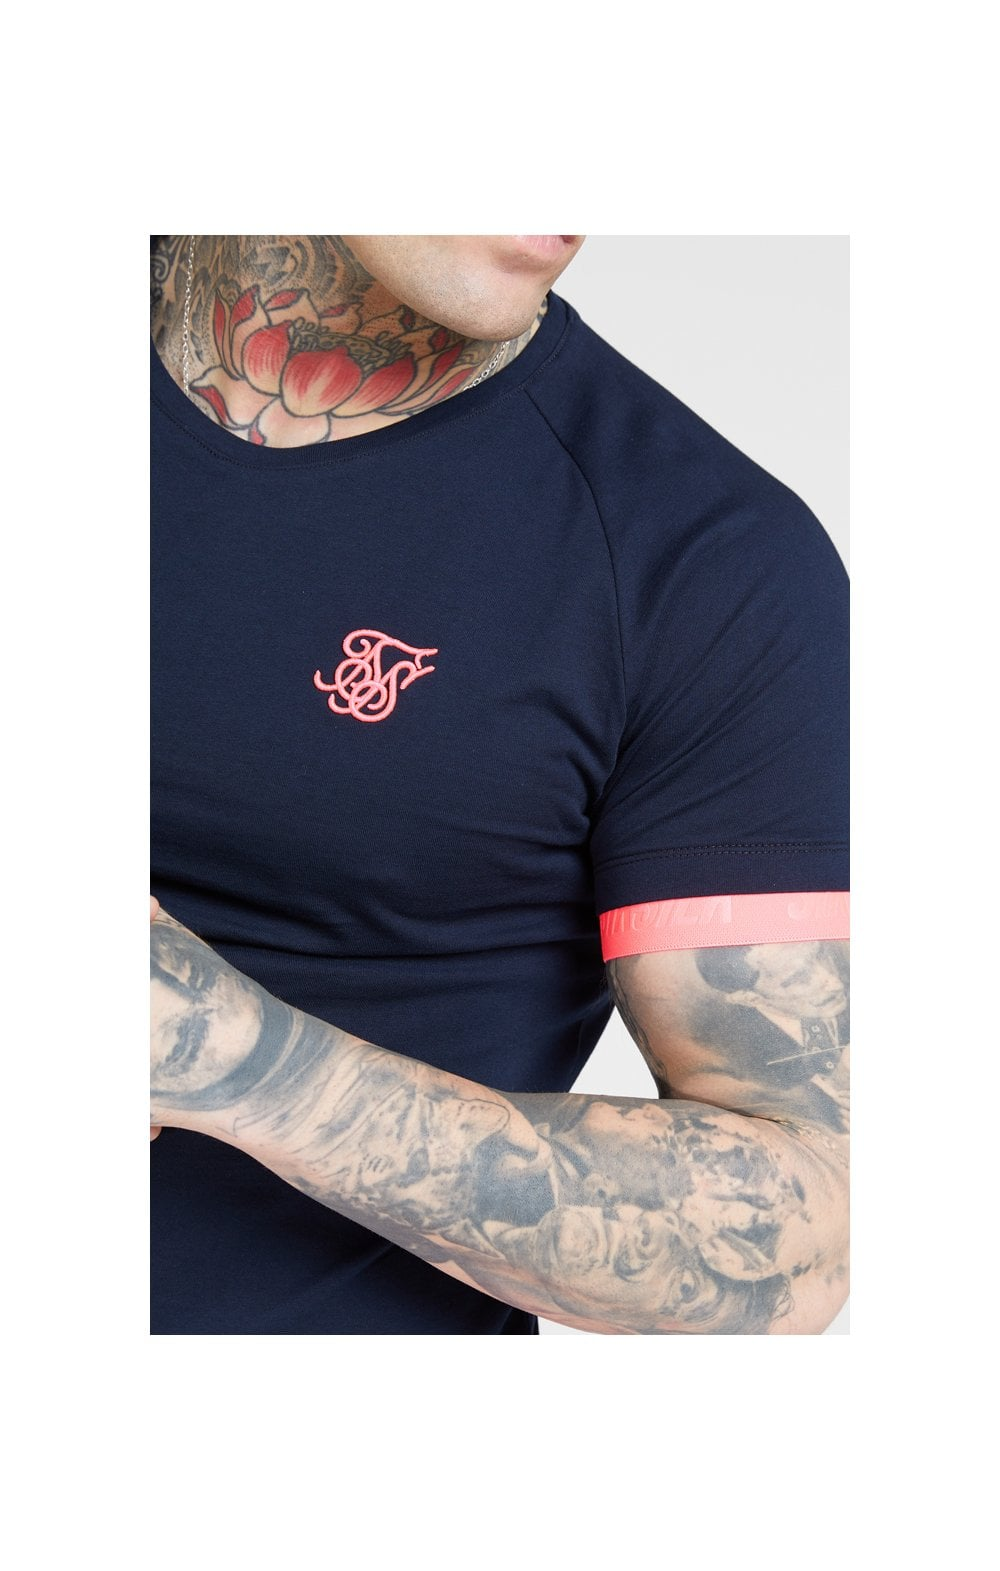 Load image into Gallery viewer, SikSilk S/S Neon Tech Tee – Navy & Neon Pink (1)